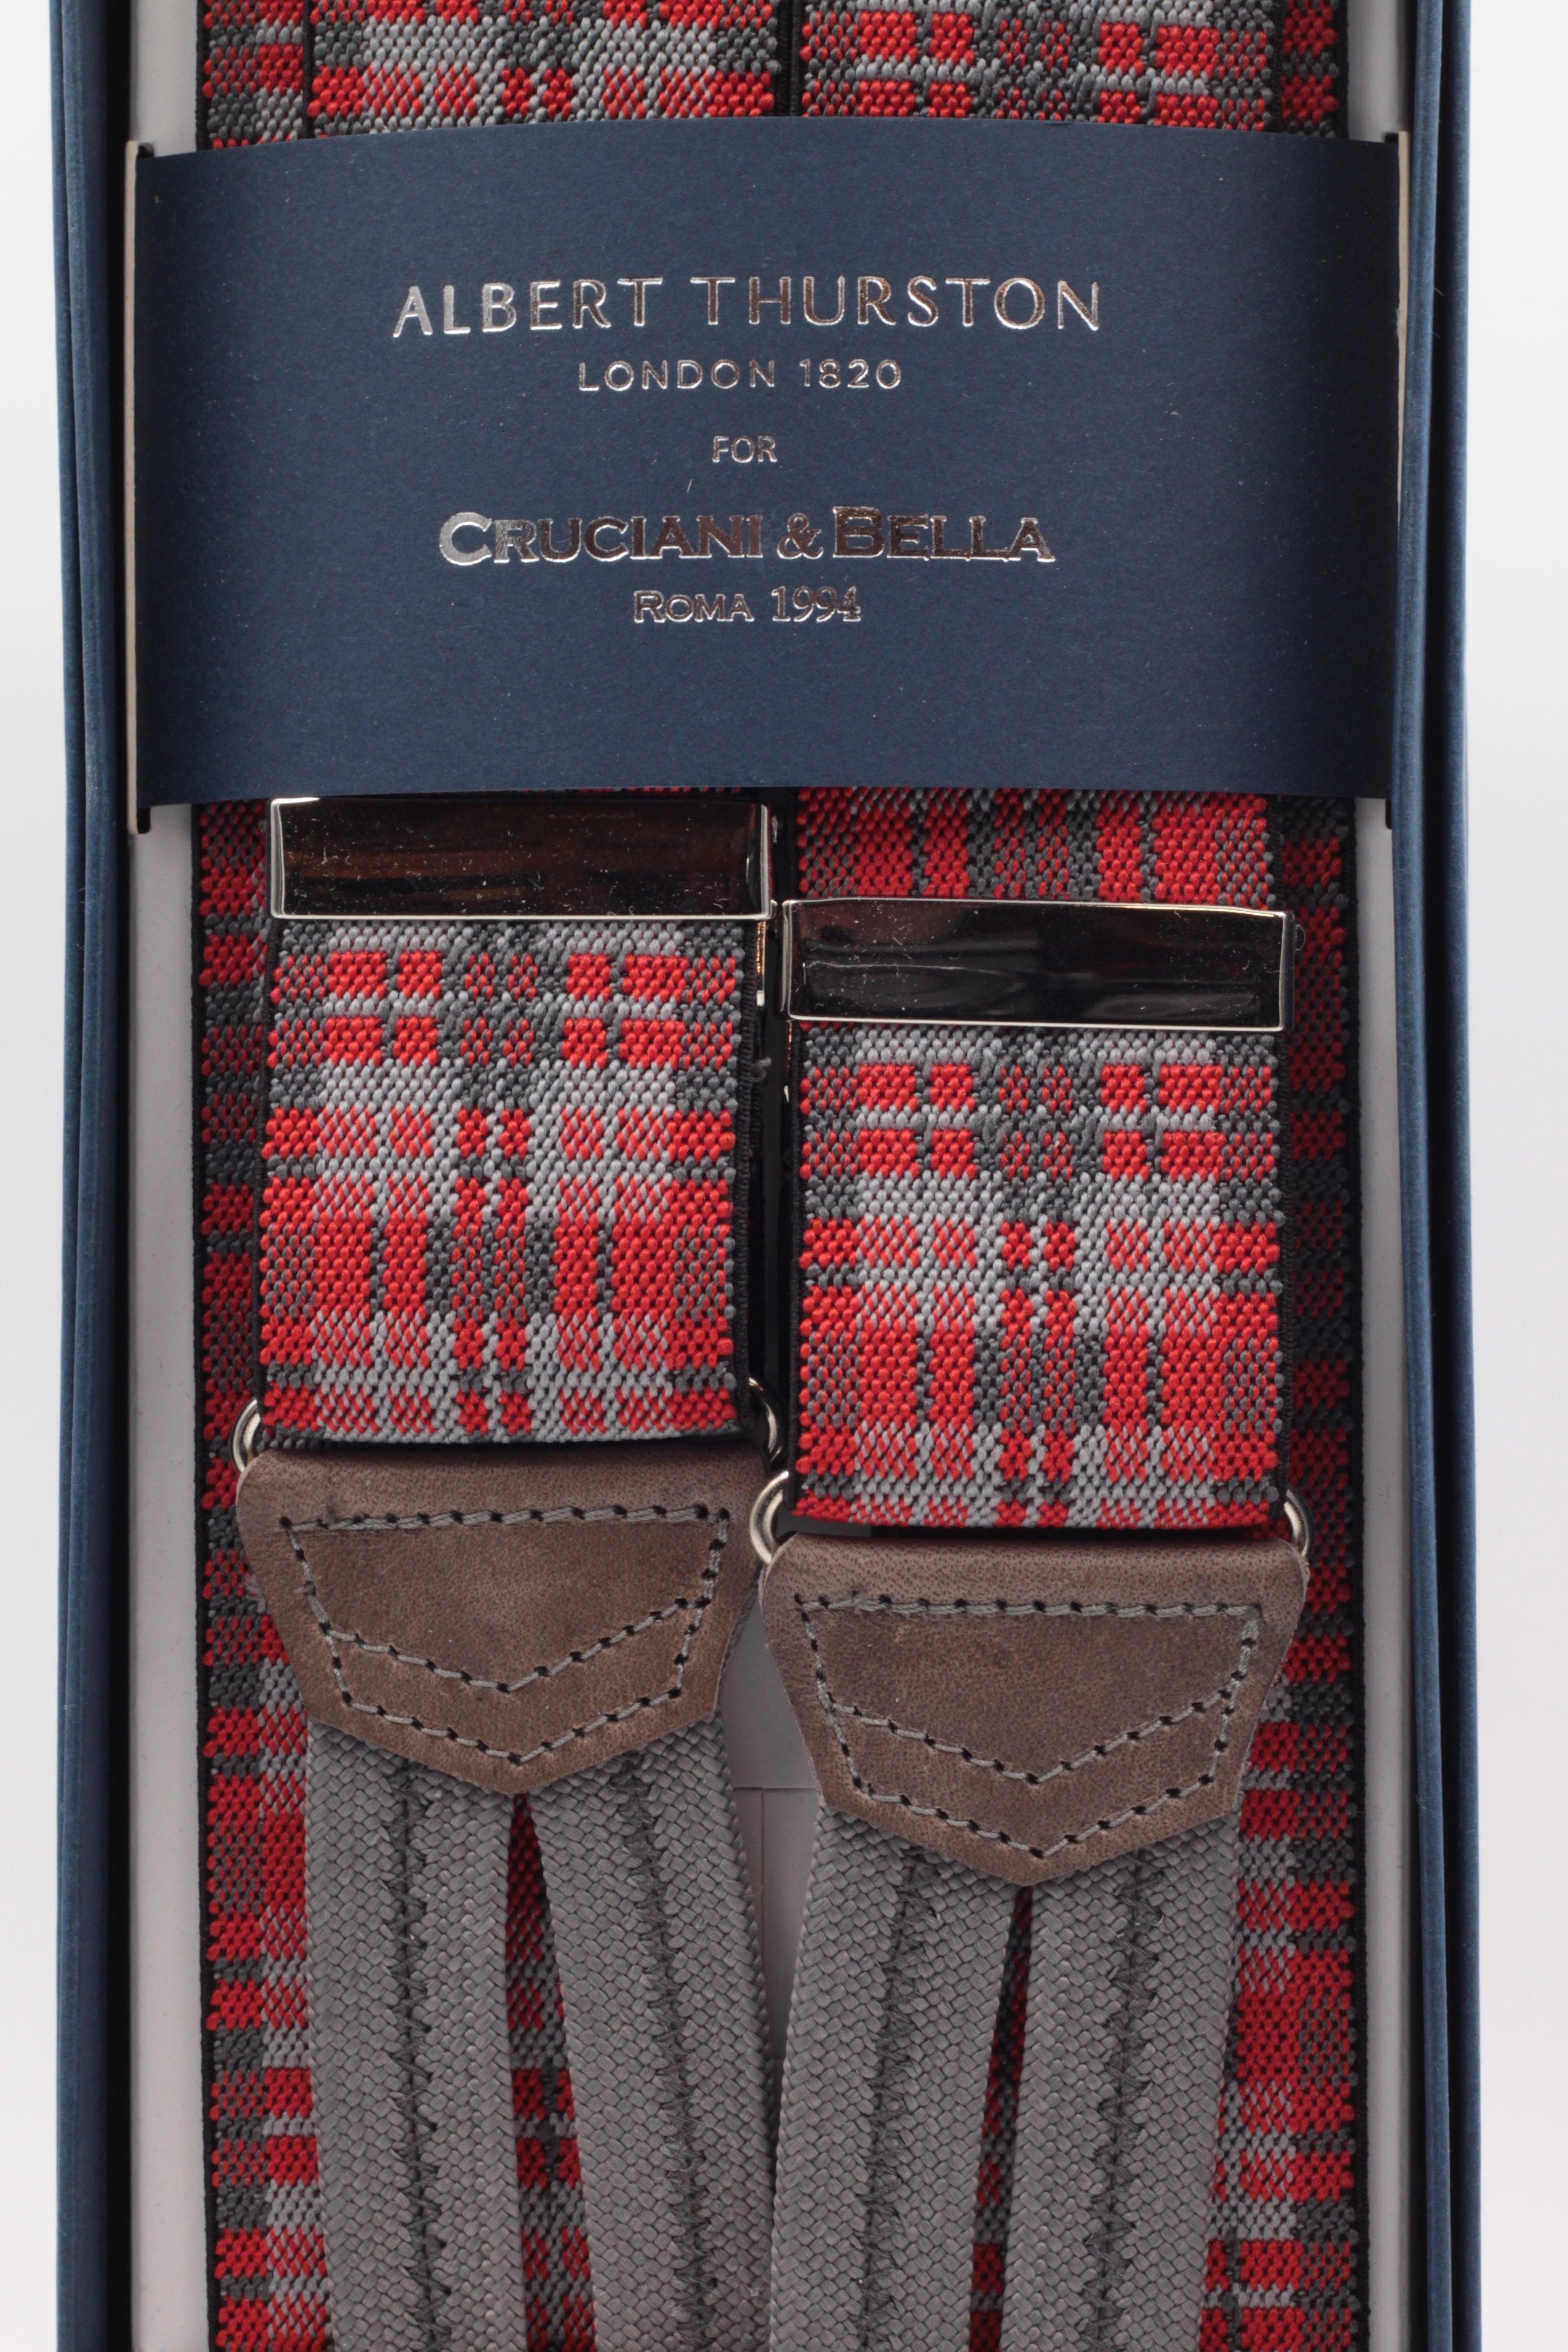 Albert Thurston for Cruciani & Bella Made in England Adjustable Sizing 35 mm elastic red and grey braces Braid ends Y-Shaped Nickel Fittings Size: L